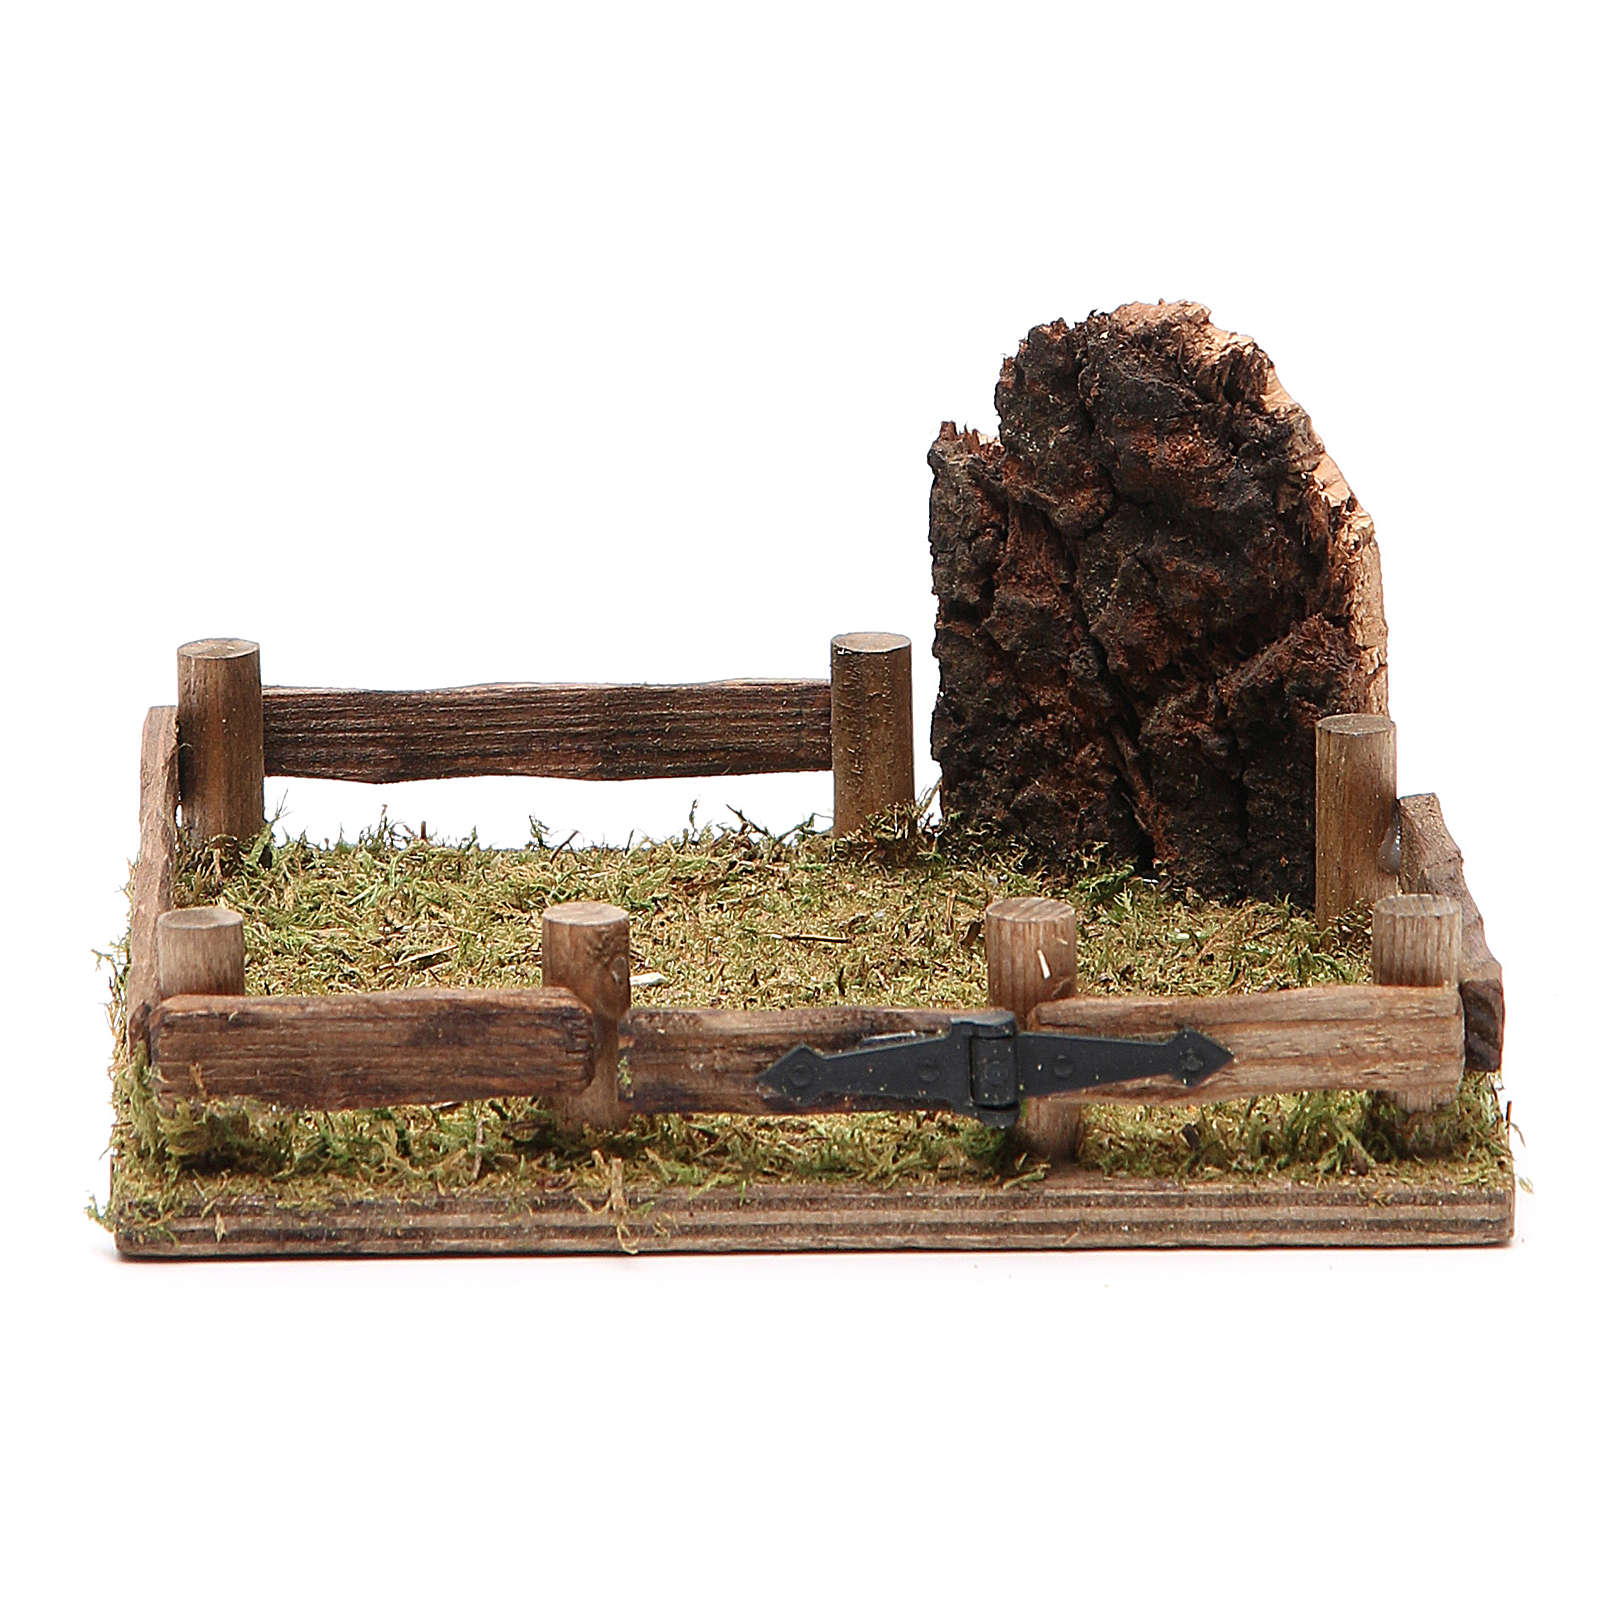 Corral in wood for nativity 12x12cm 4